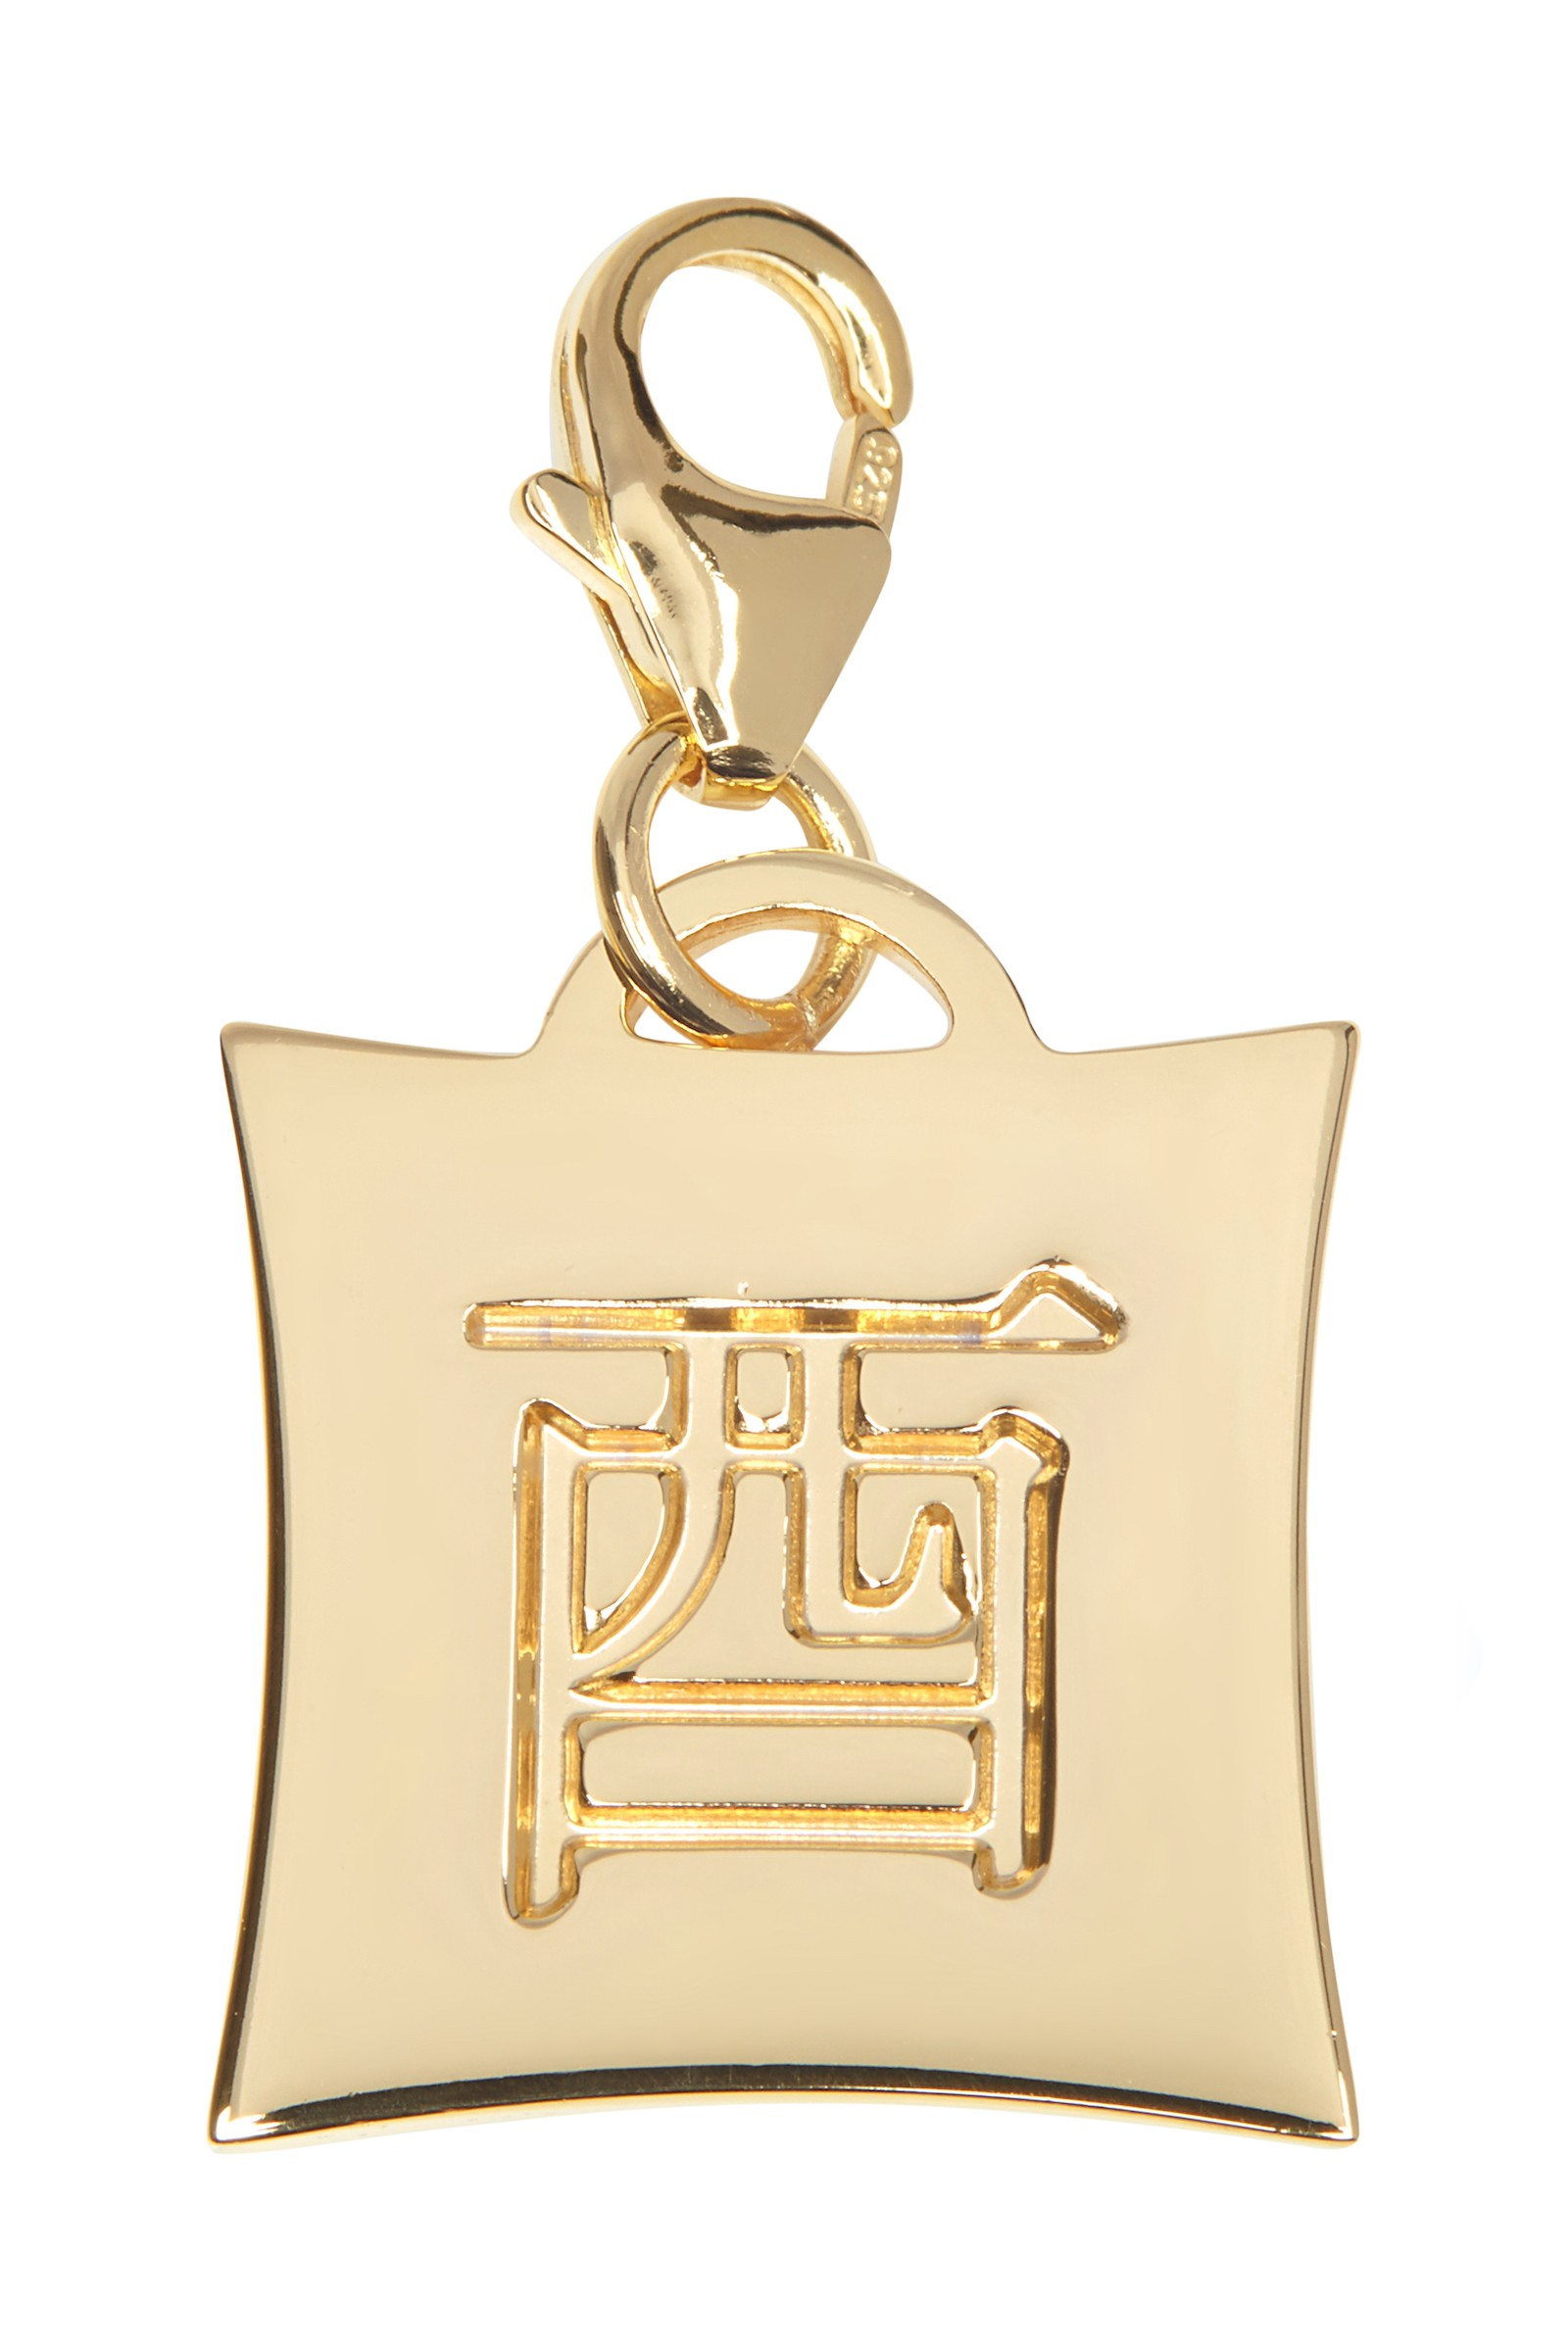 Japanese Star Sign Charm - Rooster - 18KT Gold Plated